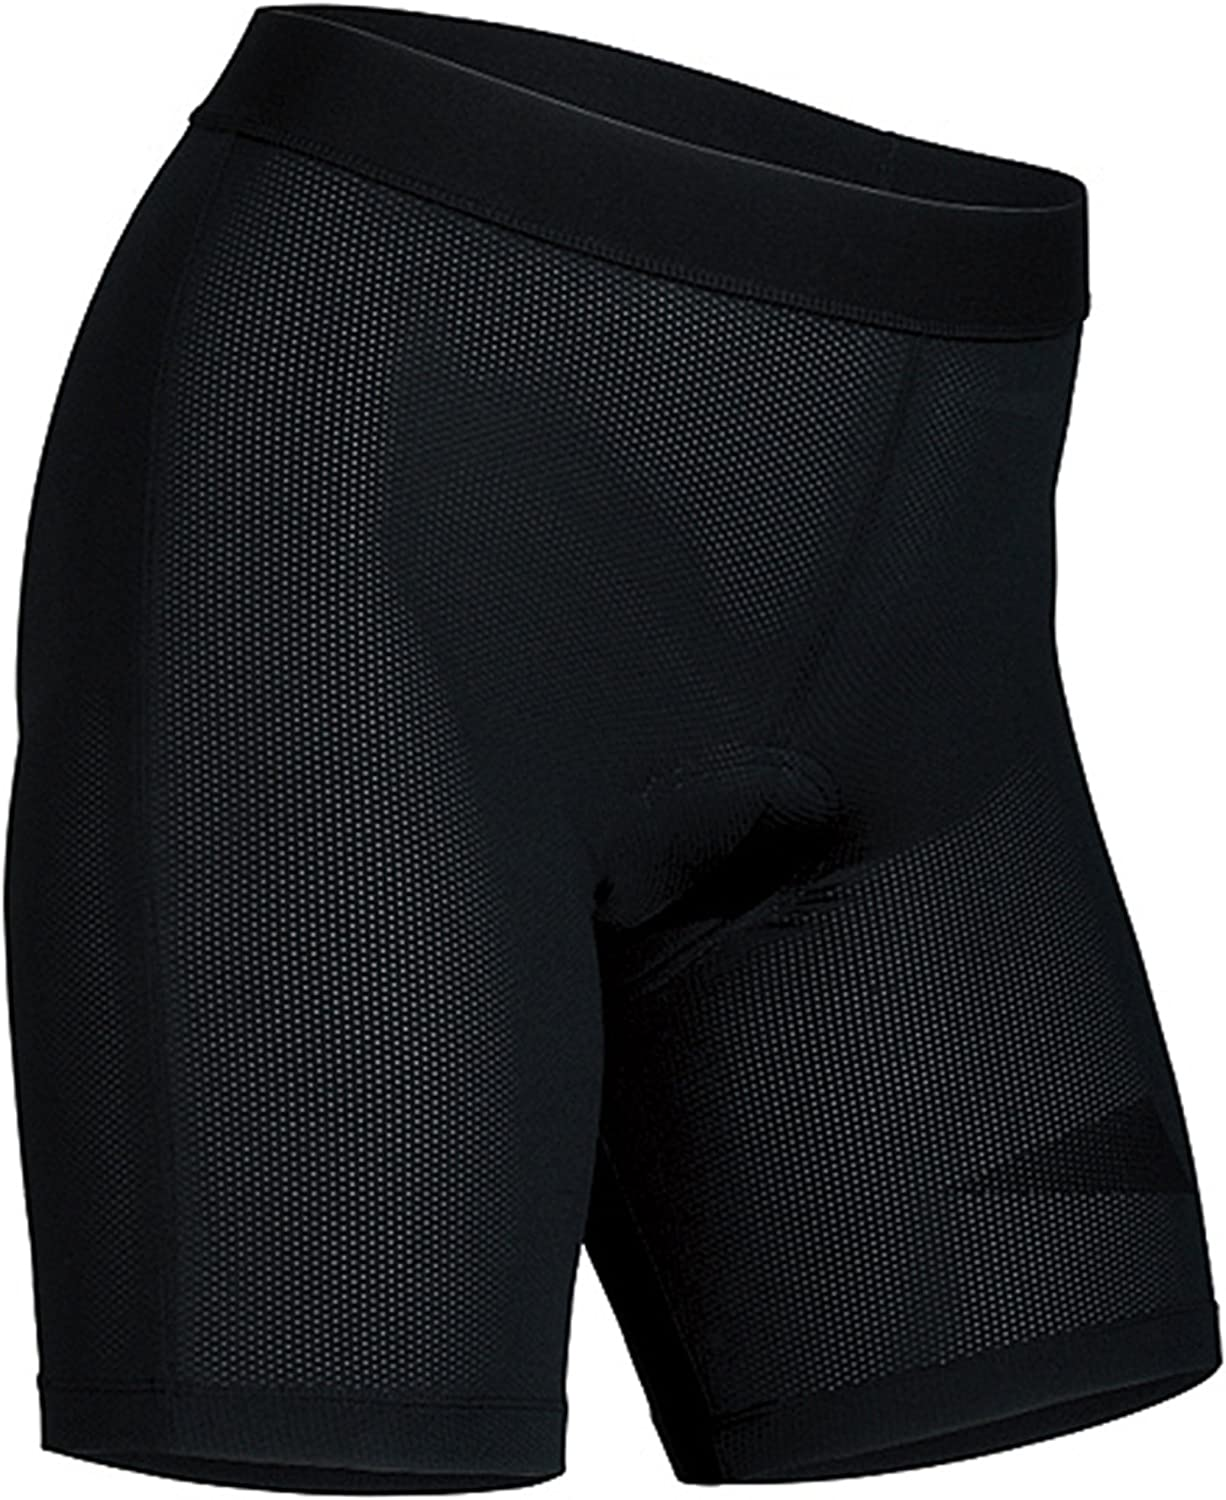 Cannondale Women's Shorts 2021 model Liner 67% OFF of fixed price